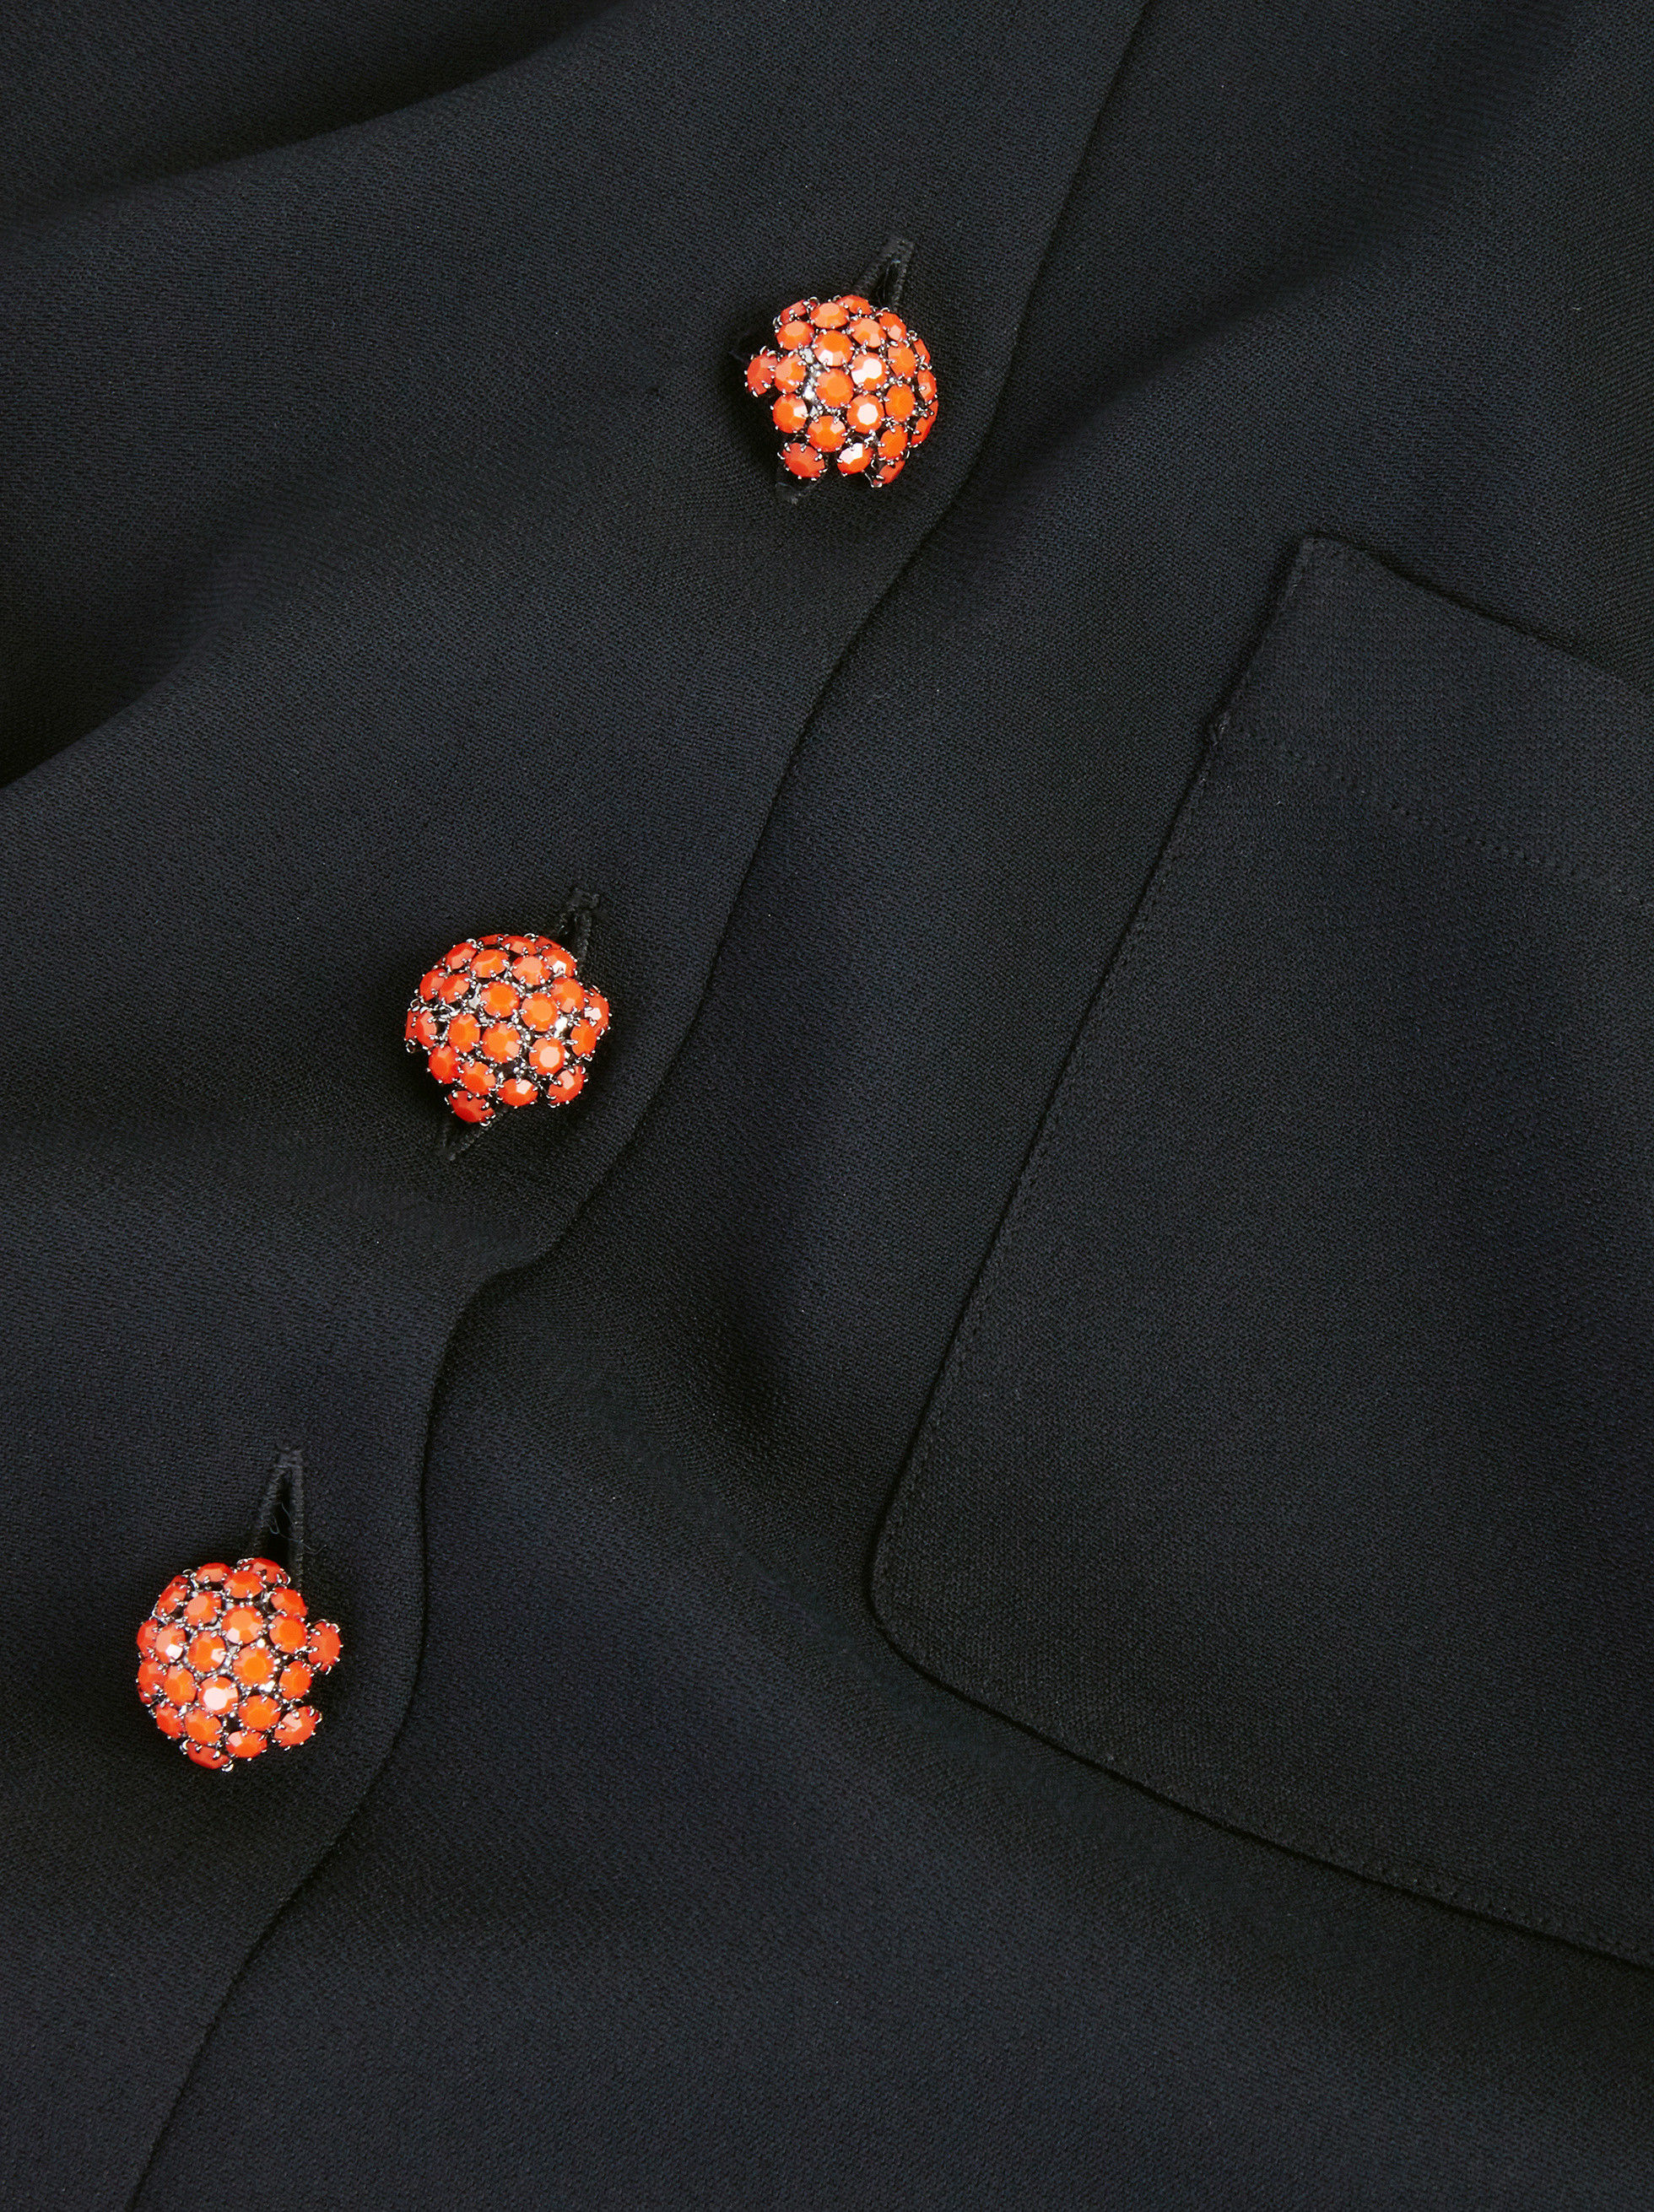 CHEMISIER WITH JEWEL BUTTONS